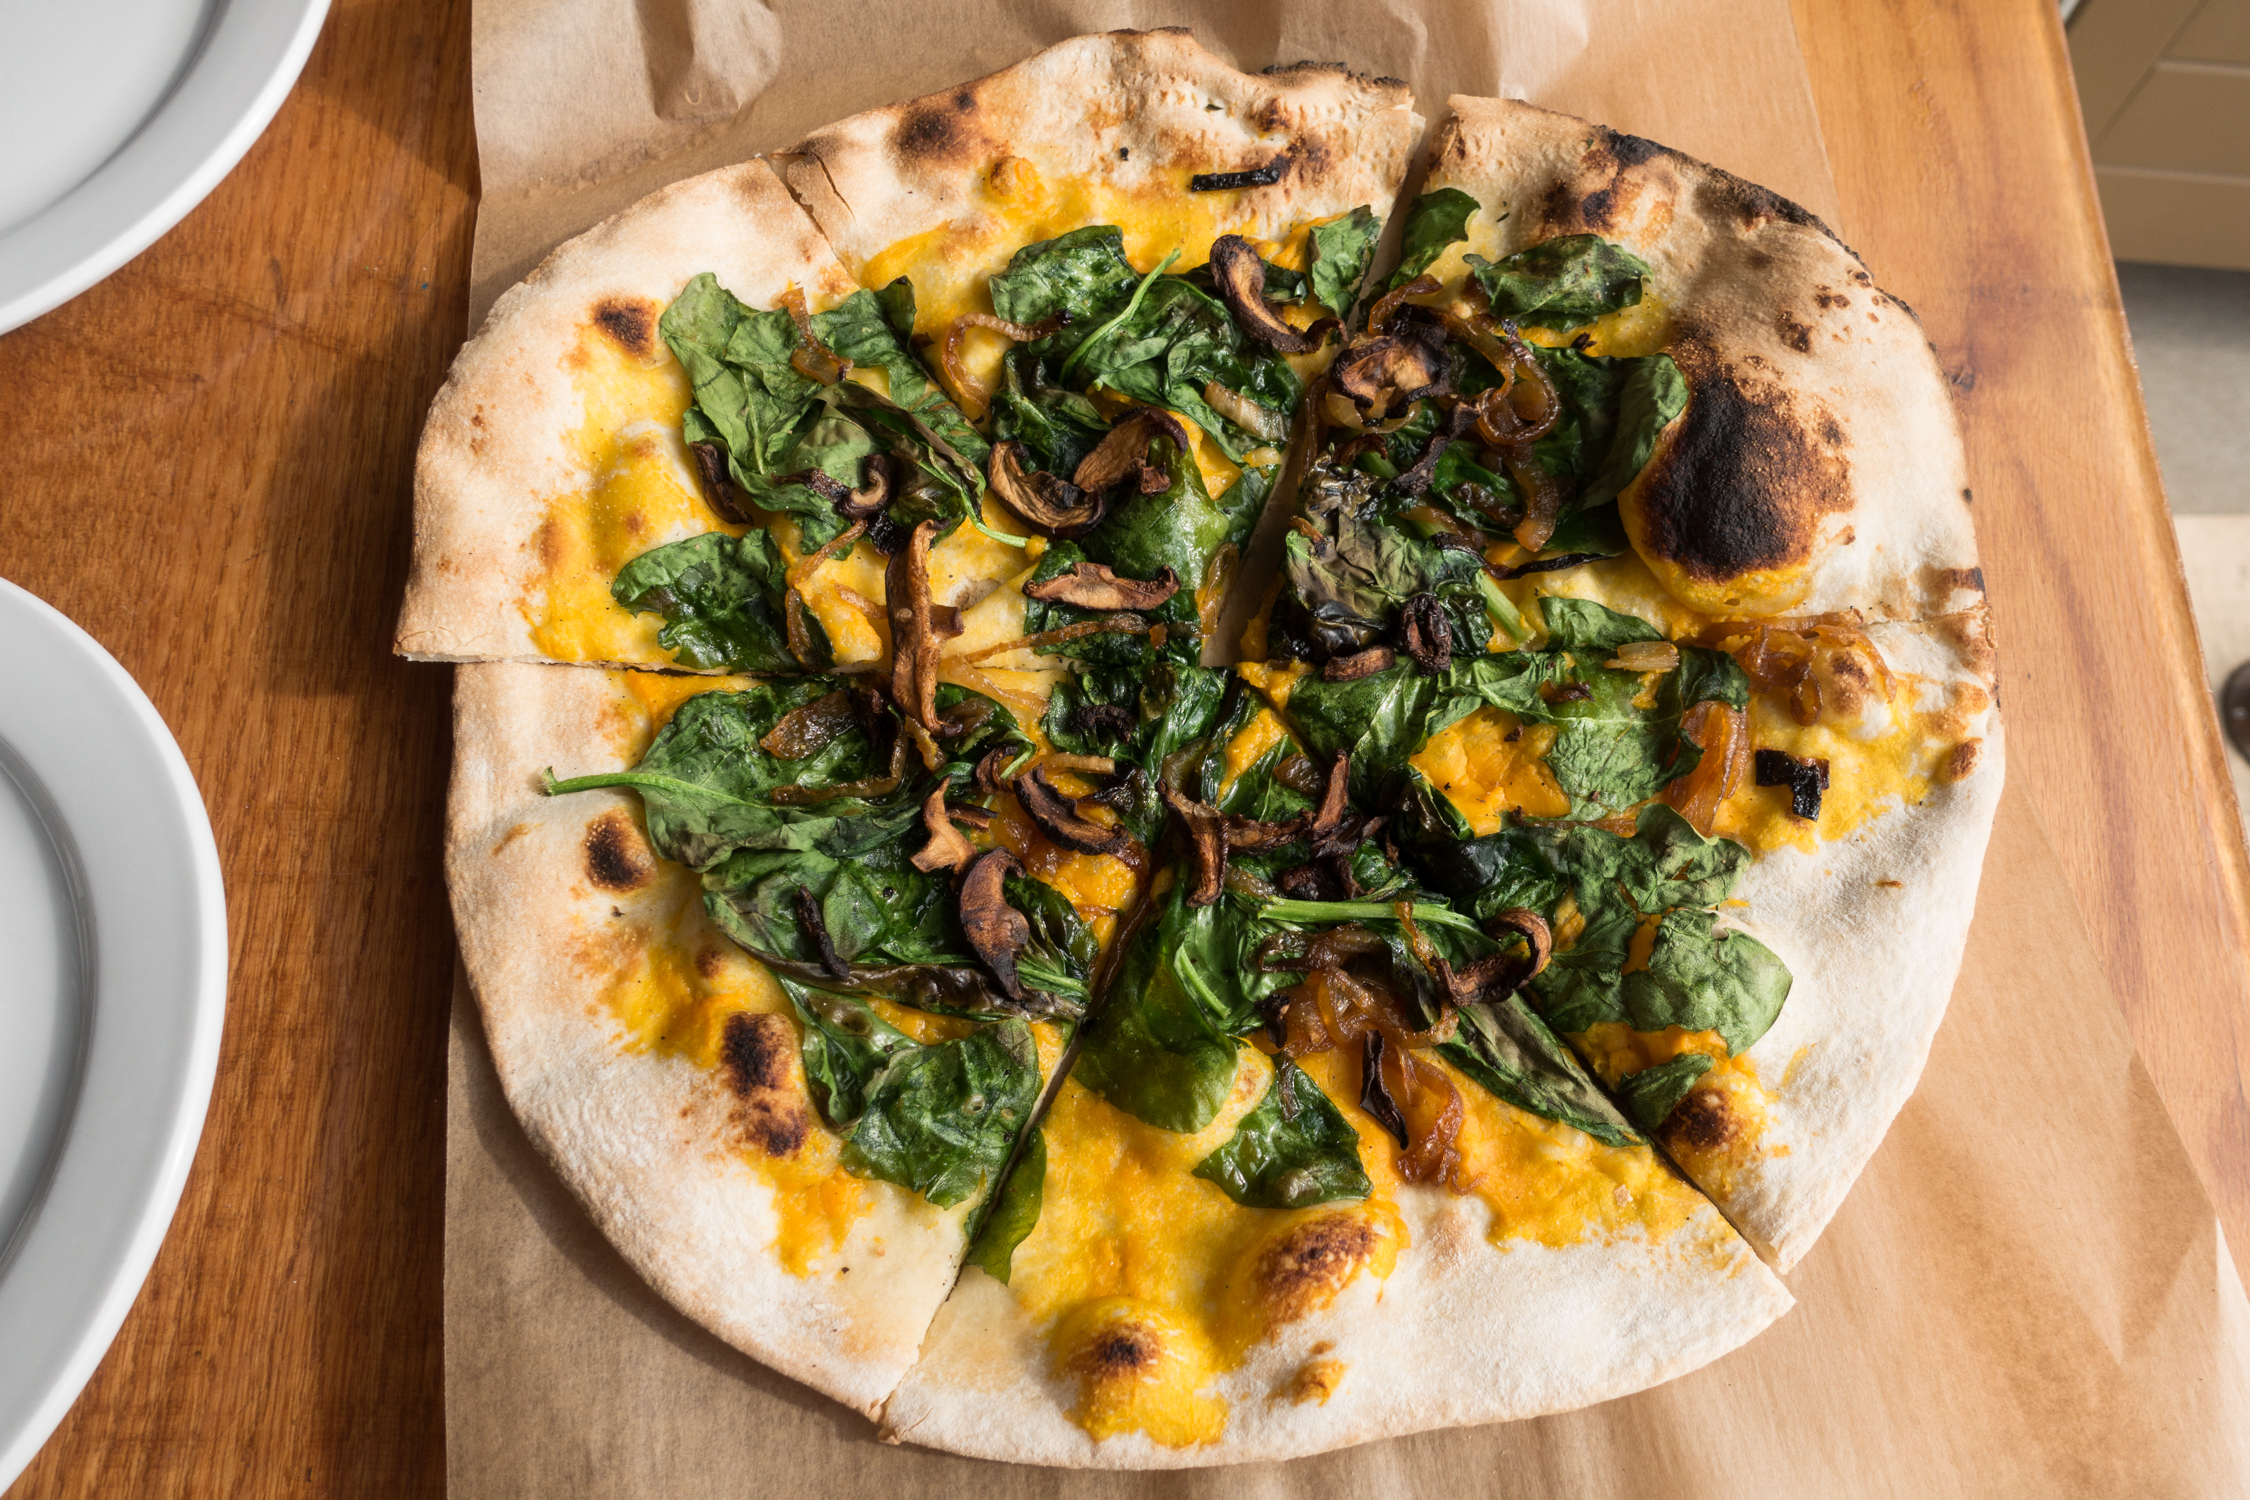 Whether you live in Grand Rapids or our planning a trip to this great Midwest city, I hope that this list of the Best Places for Vegan Pizza In Grand Rapids is helpful in your quest to find delicious vegan pizza!